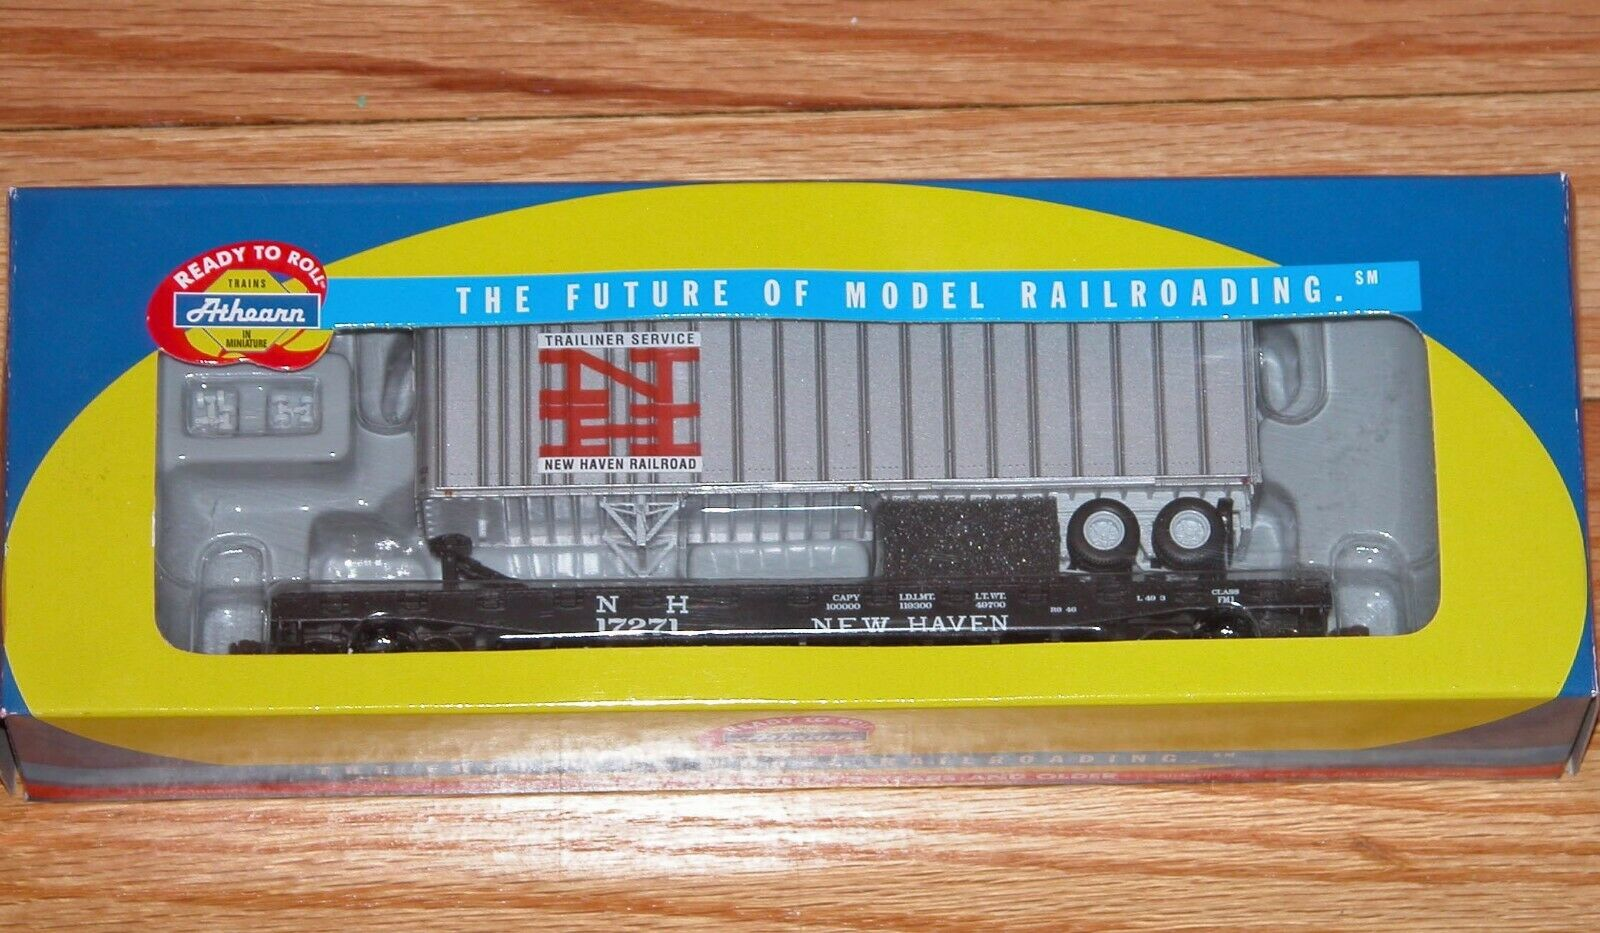 ATHEARN 72458 50' FLAT CAR WITH 40' TRAILER NEW HAVEN NH 17271